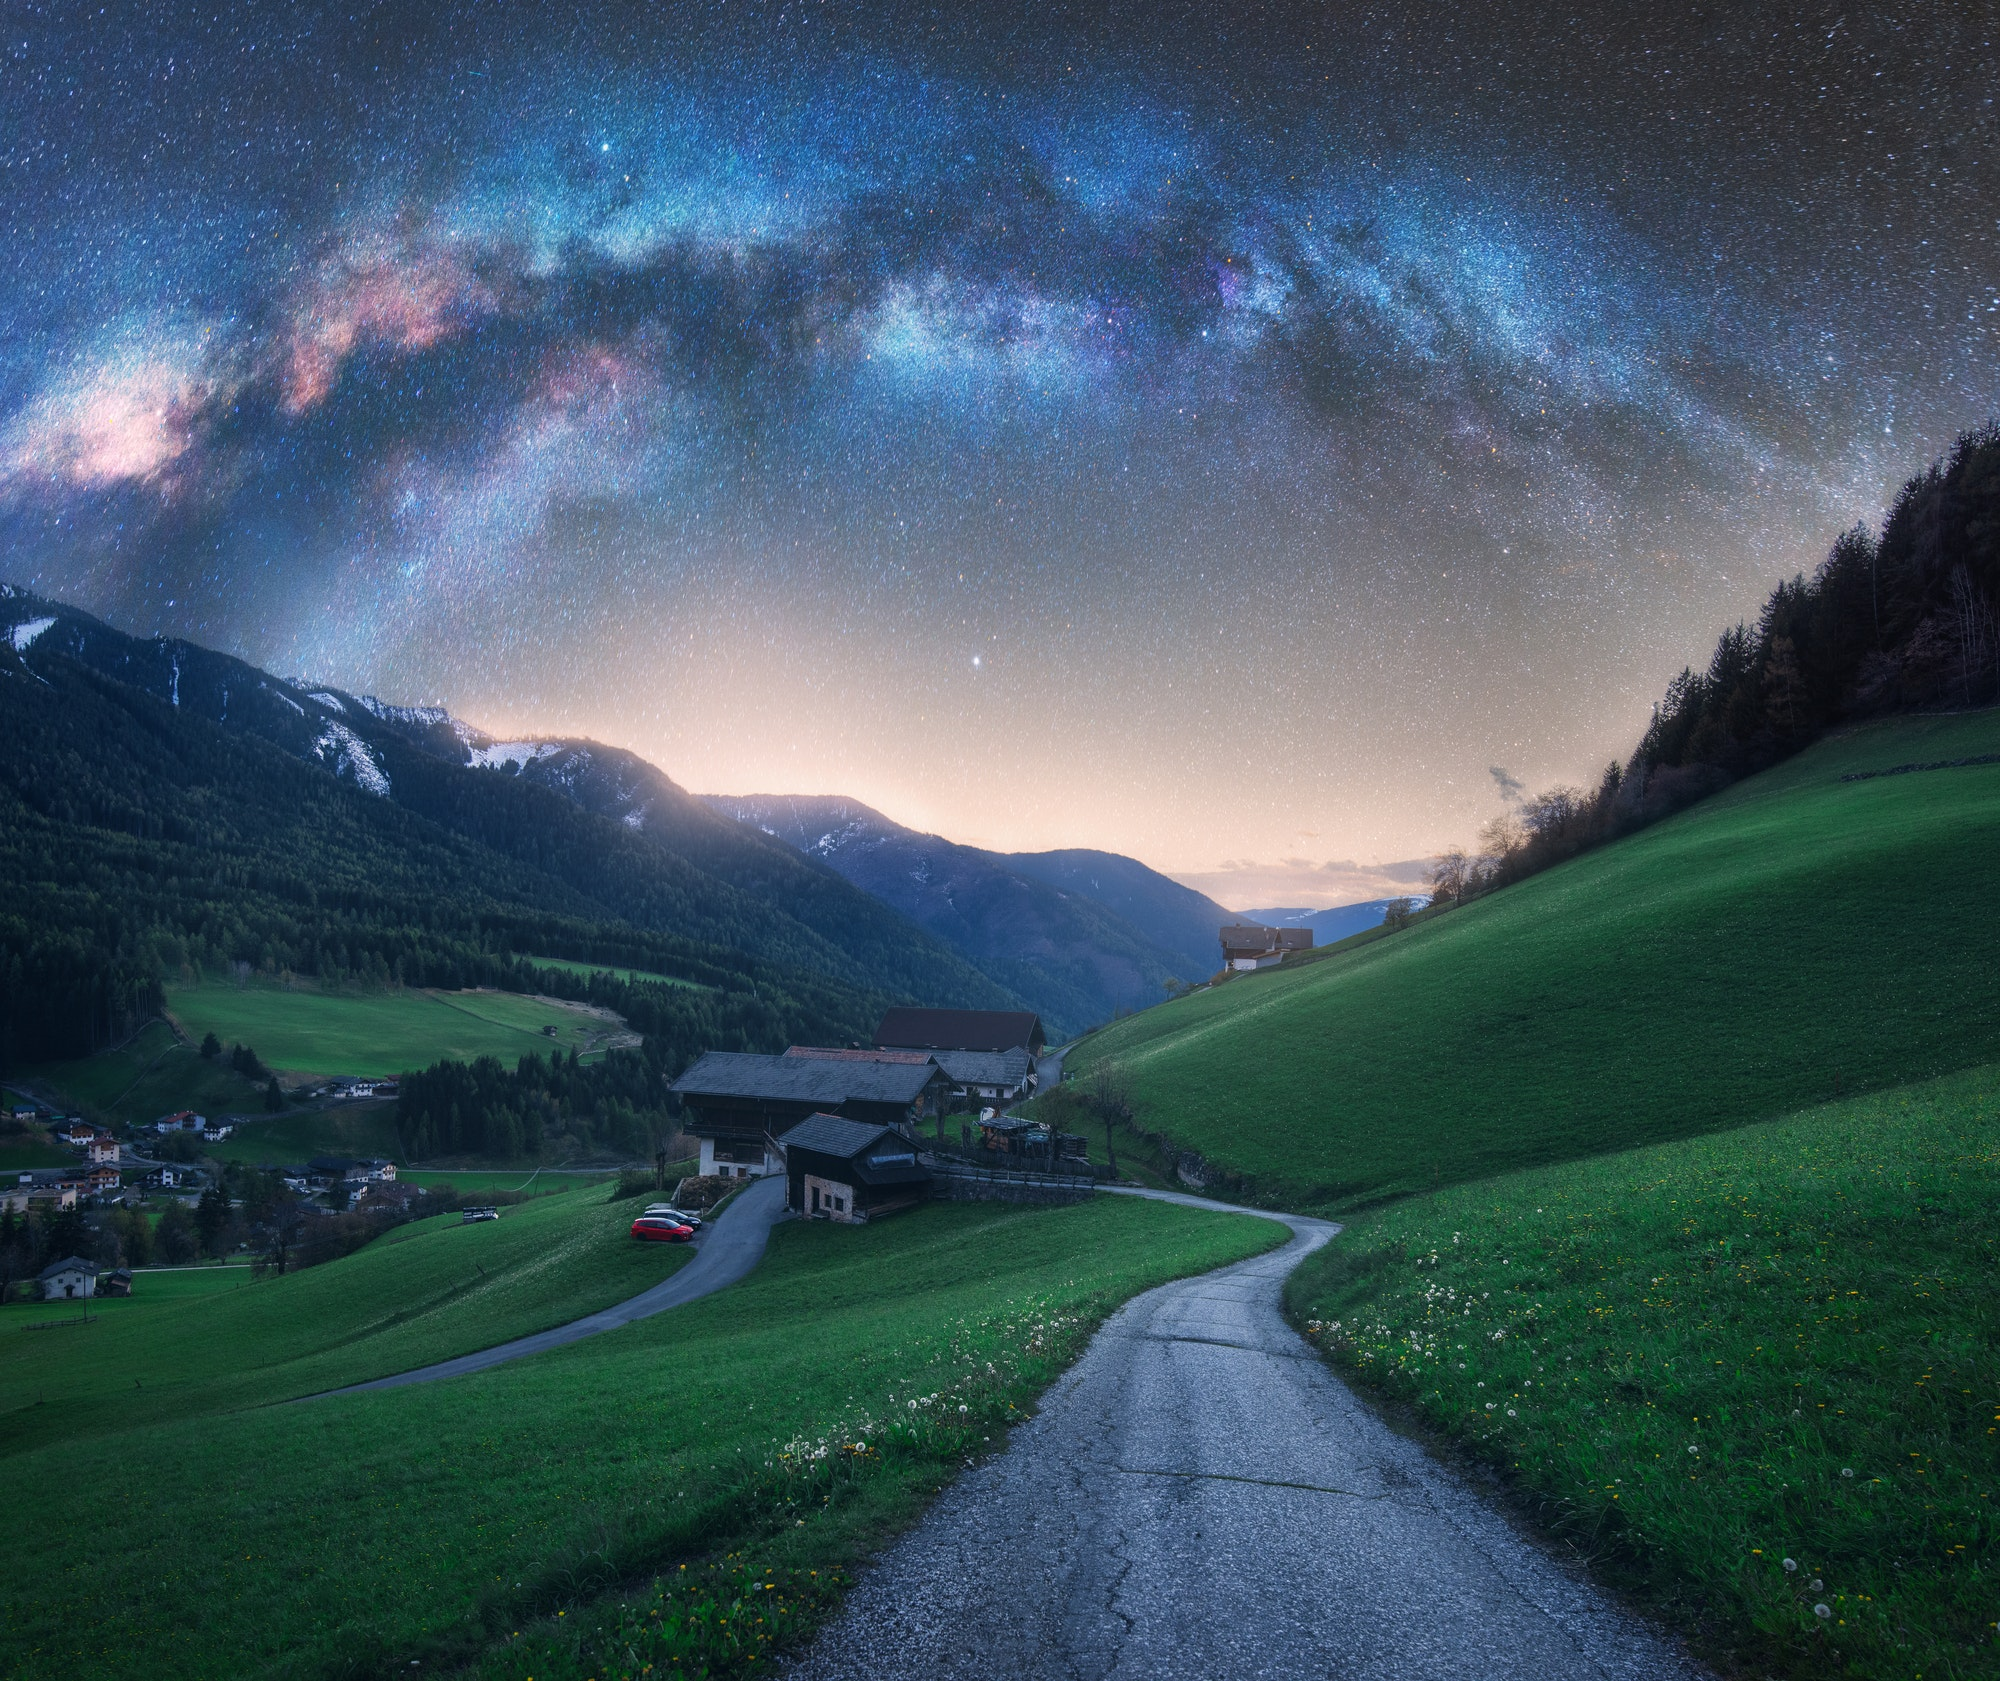 Arched Milky Way over the rural mountain road in summer in Italy